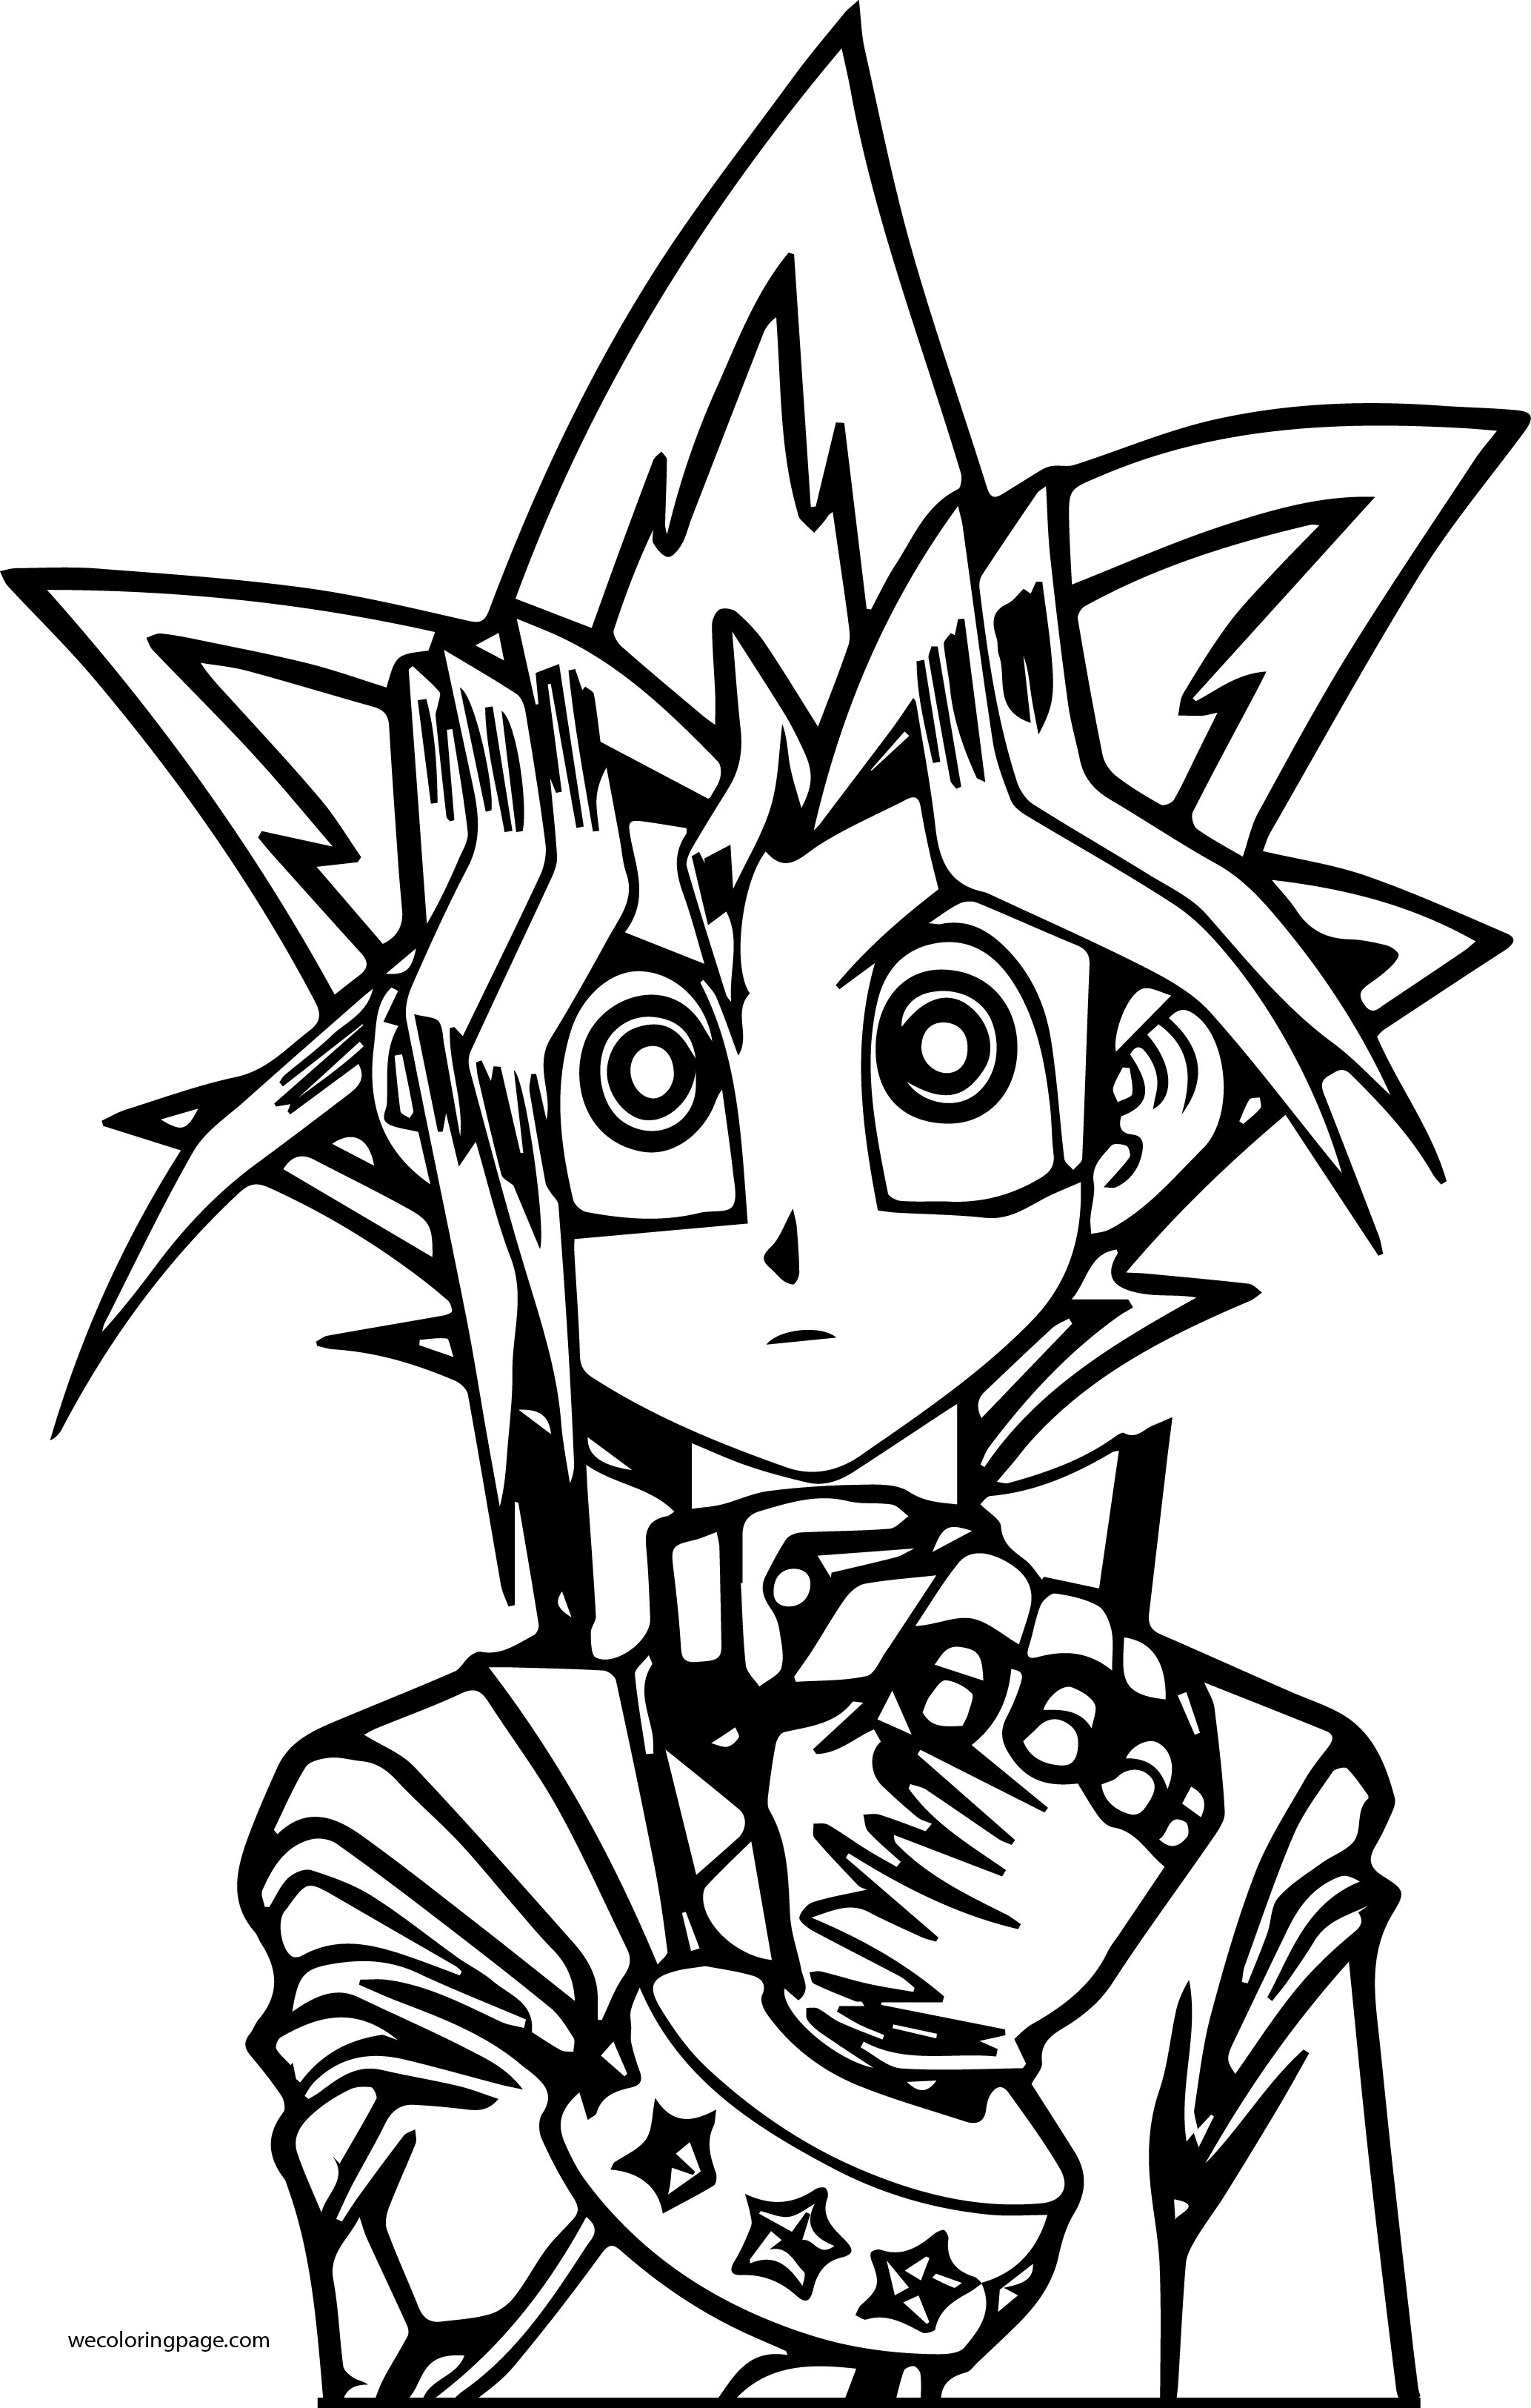 coloring pages yugioh yugioh coloring pages free download on clipartmag coloring pages yugioh